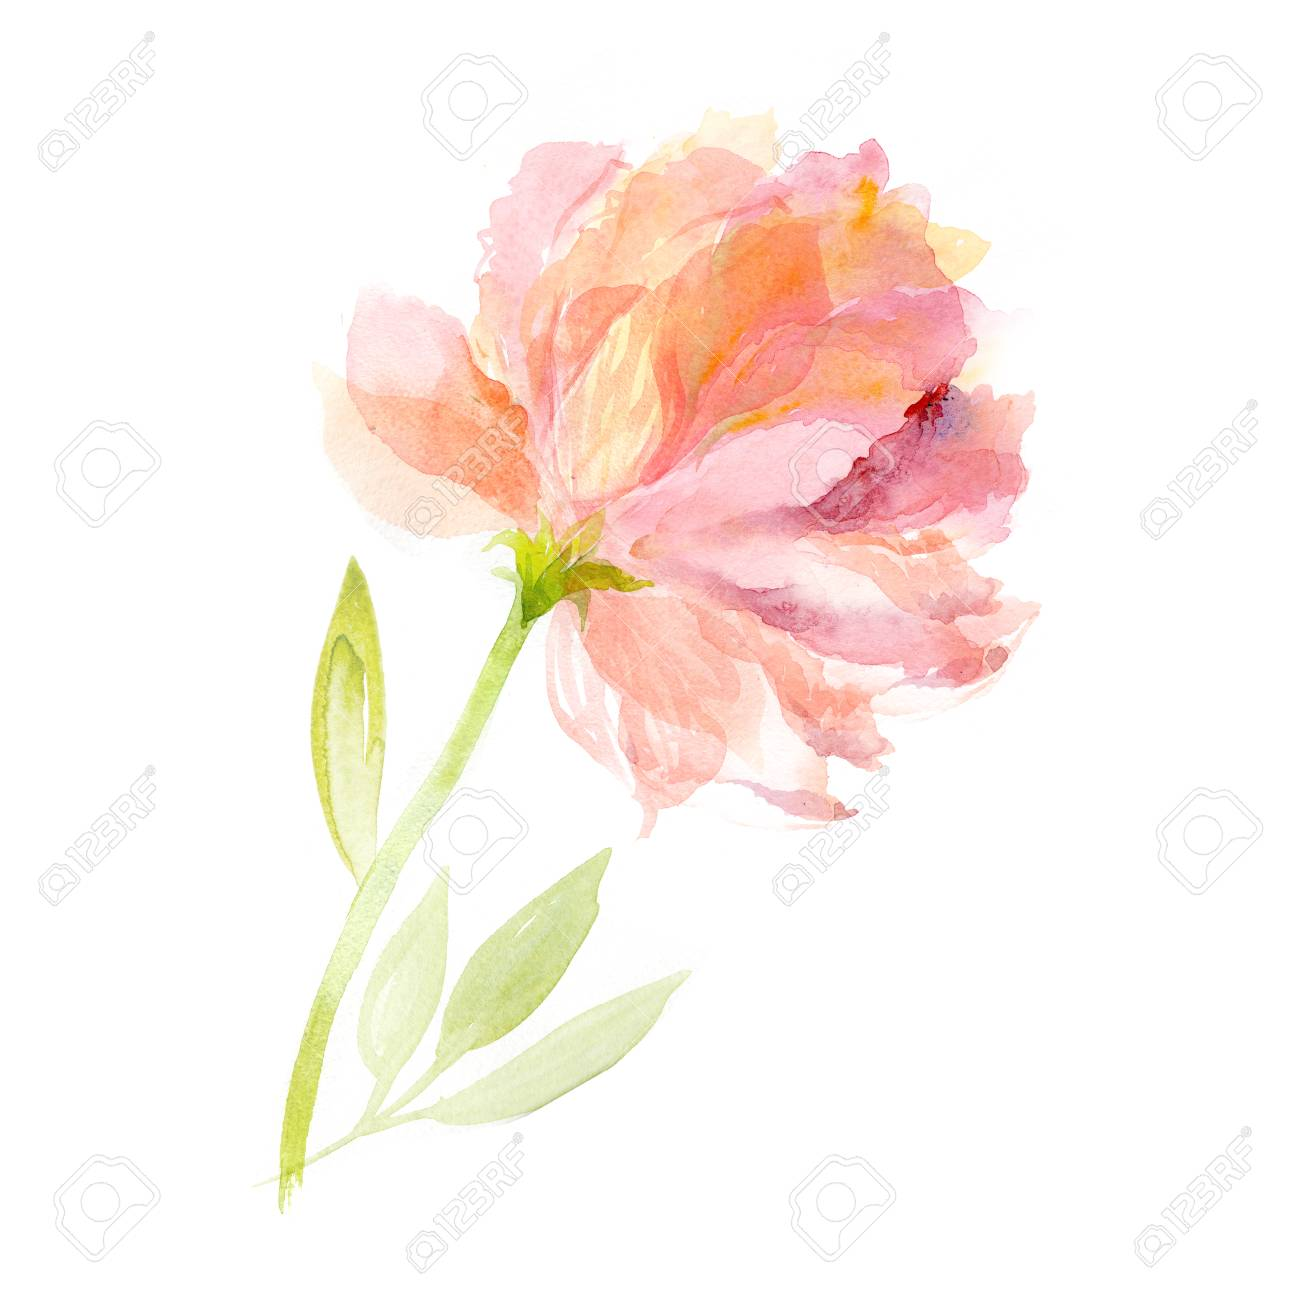 Greeting card. Watercolor flowers background. Pink peony - 64825557